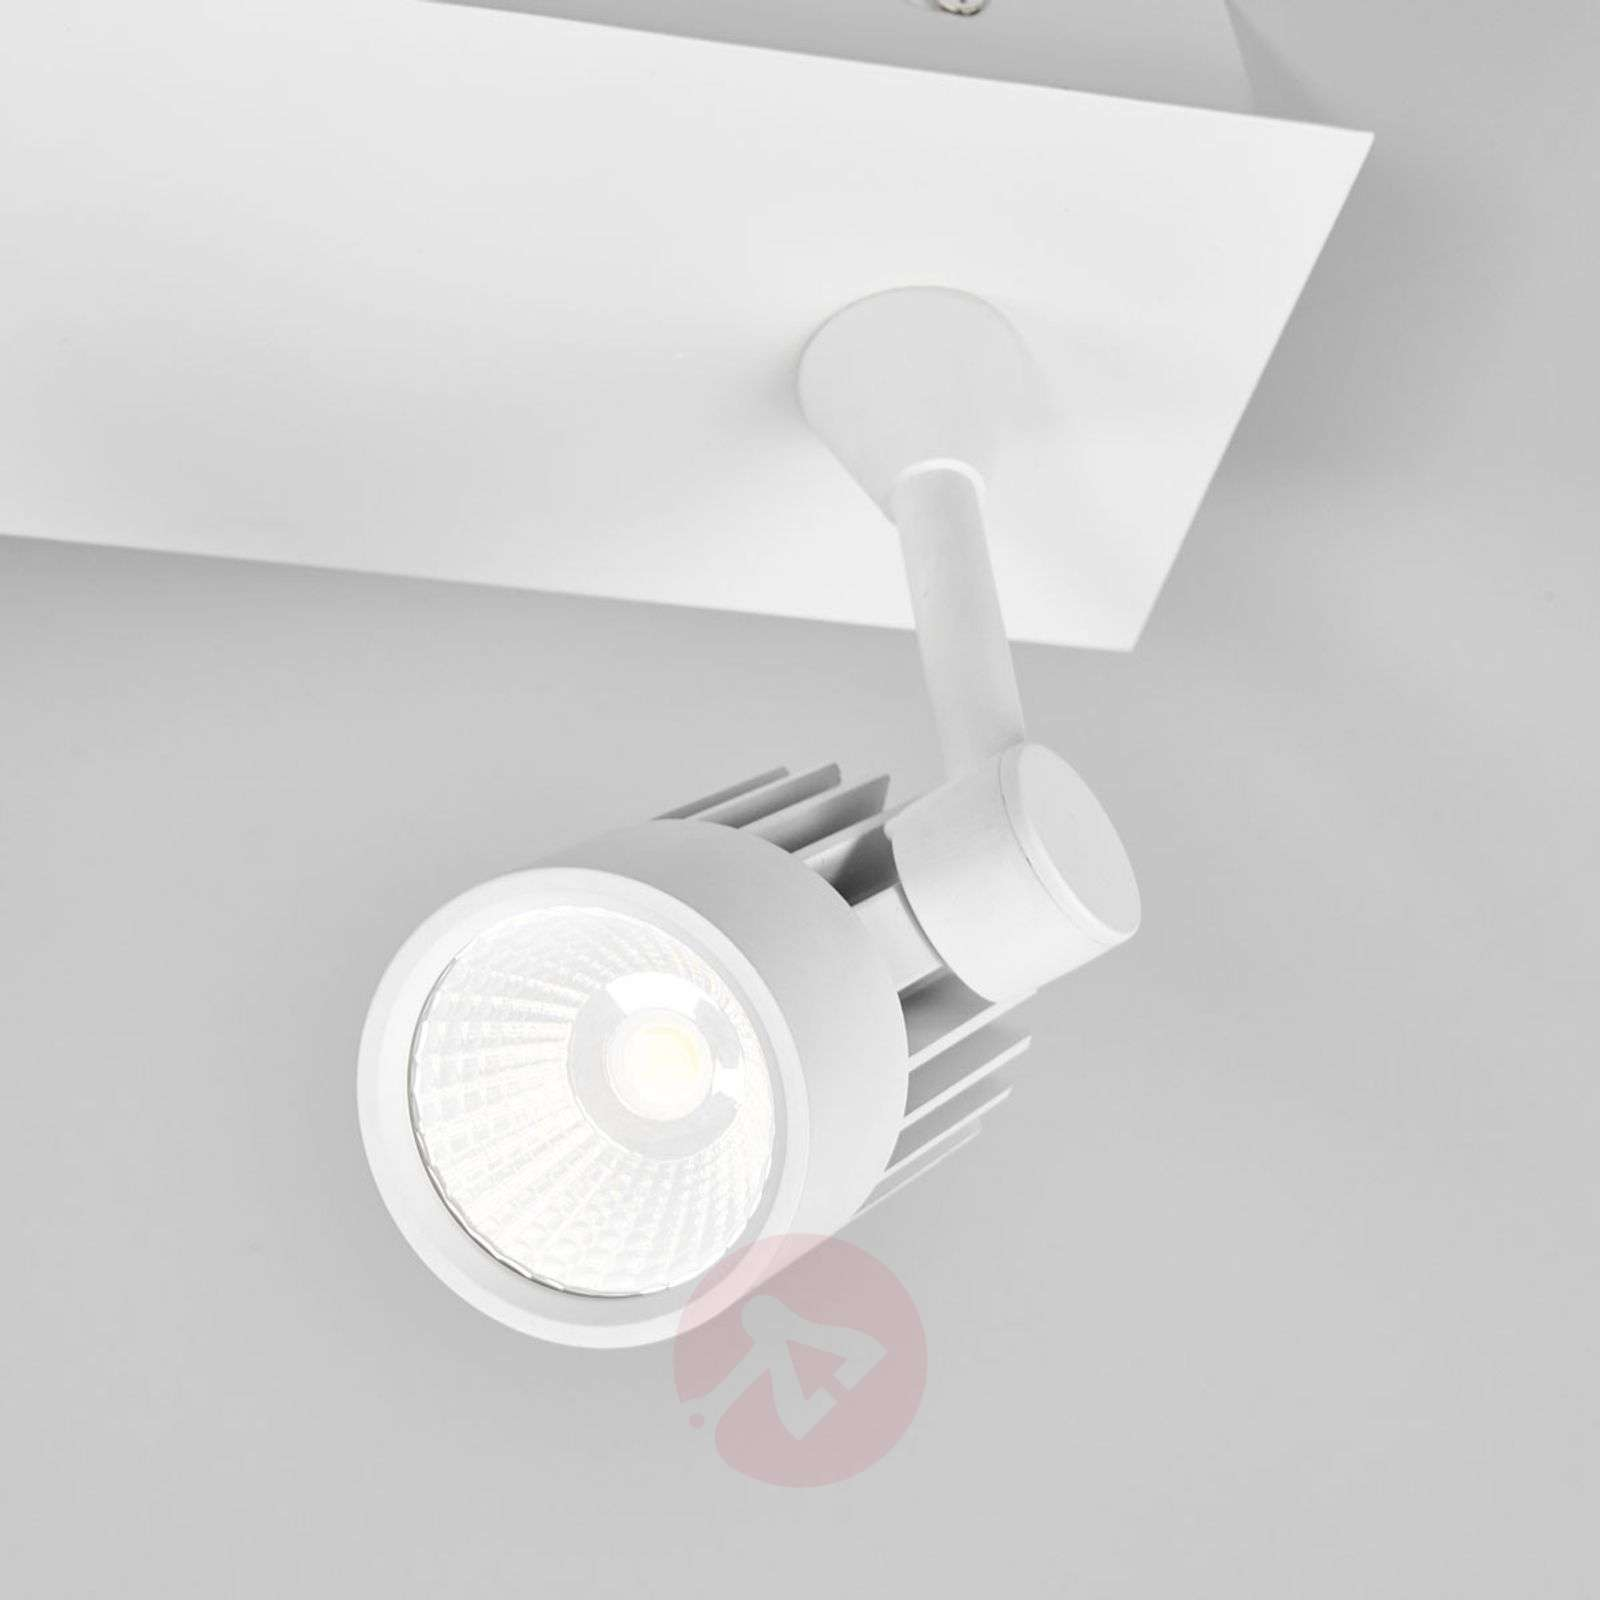 Justus two-bulb LED recessed/surface light-9967022-02